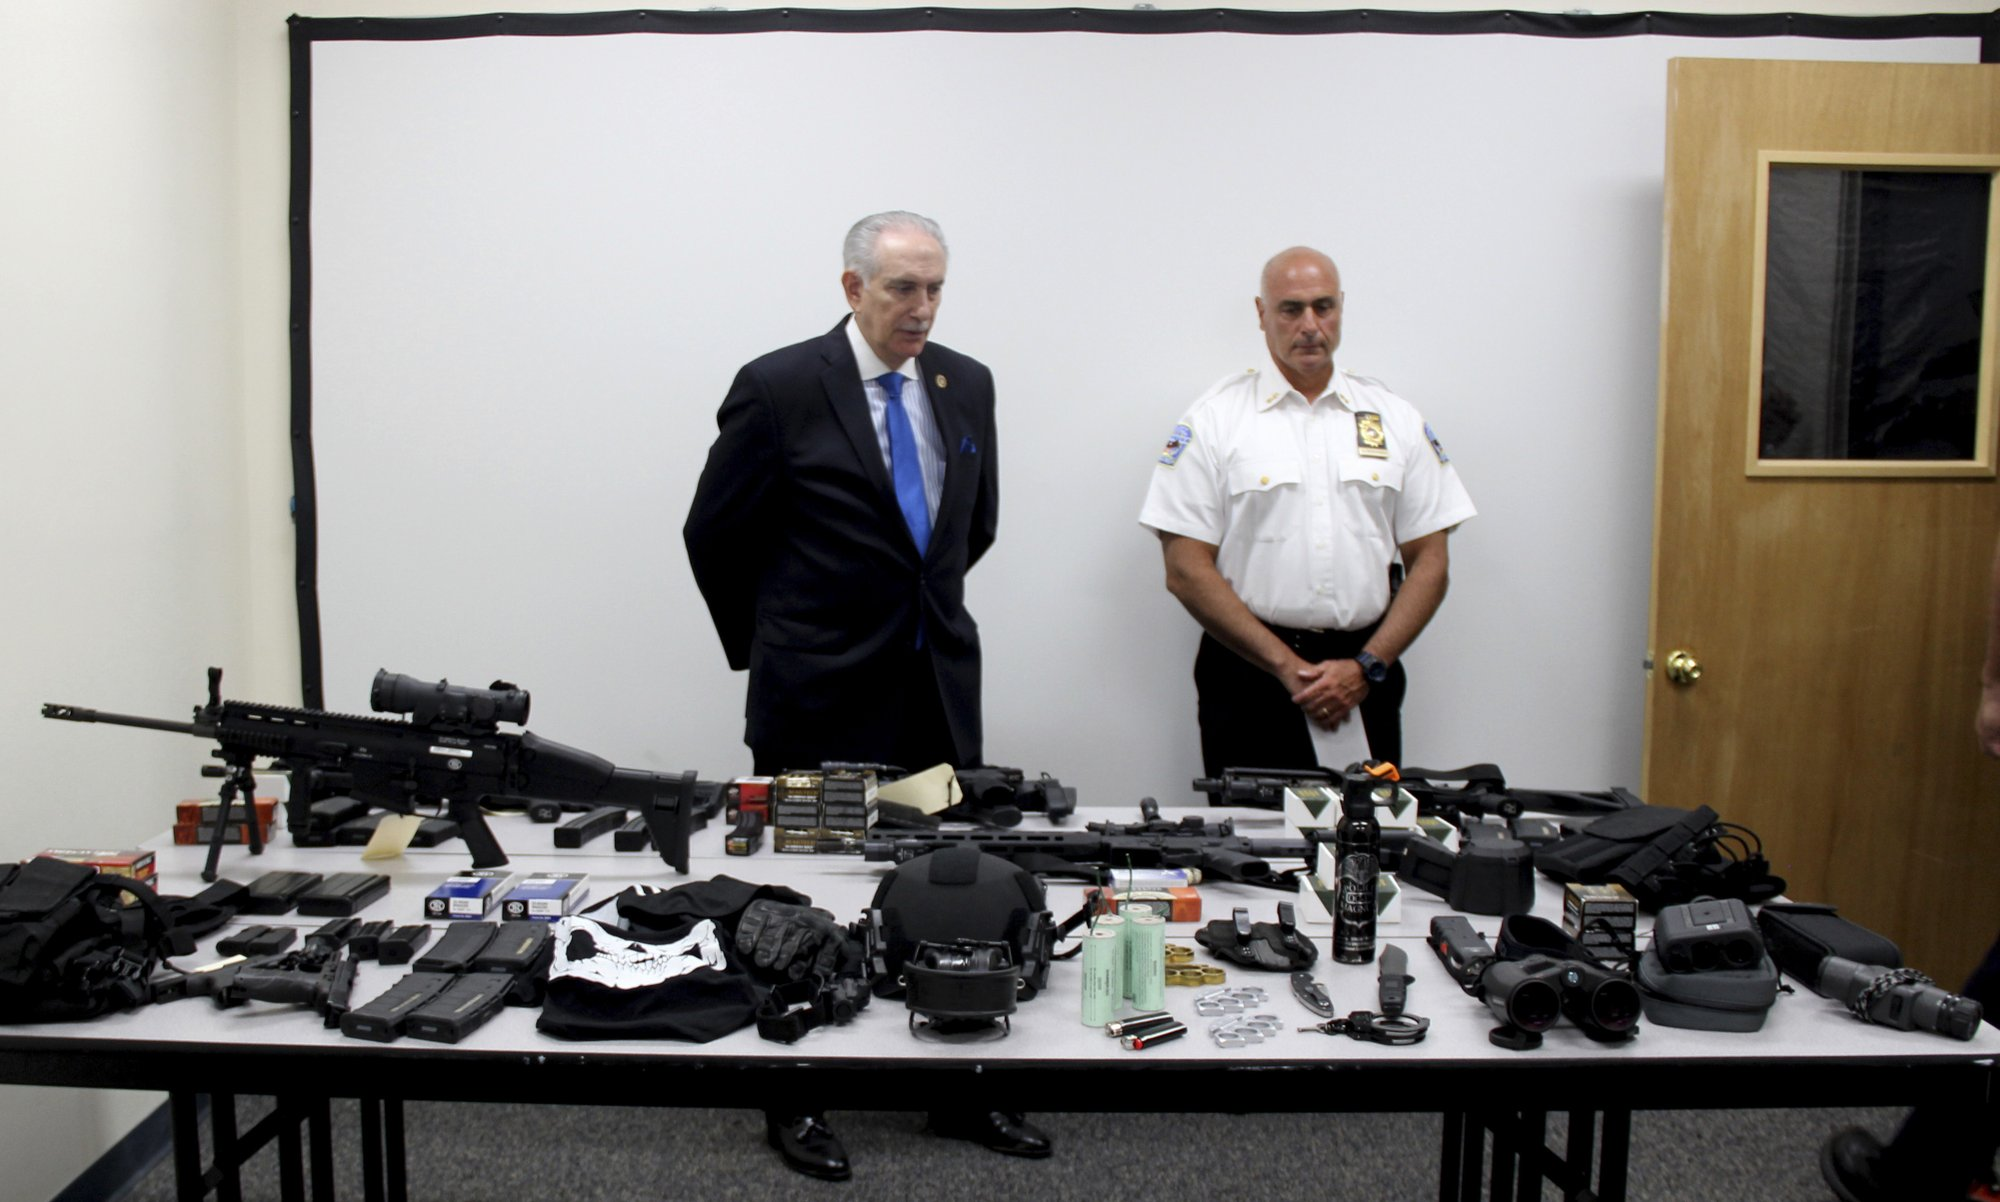 Attorney: NY surgeon in weapons case is just a gun fan